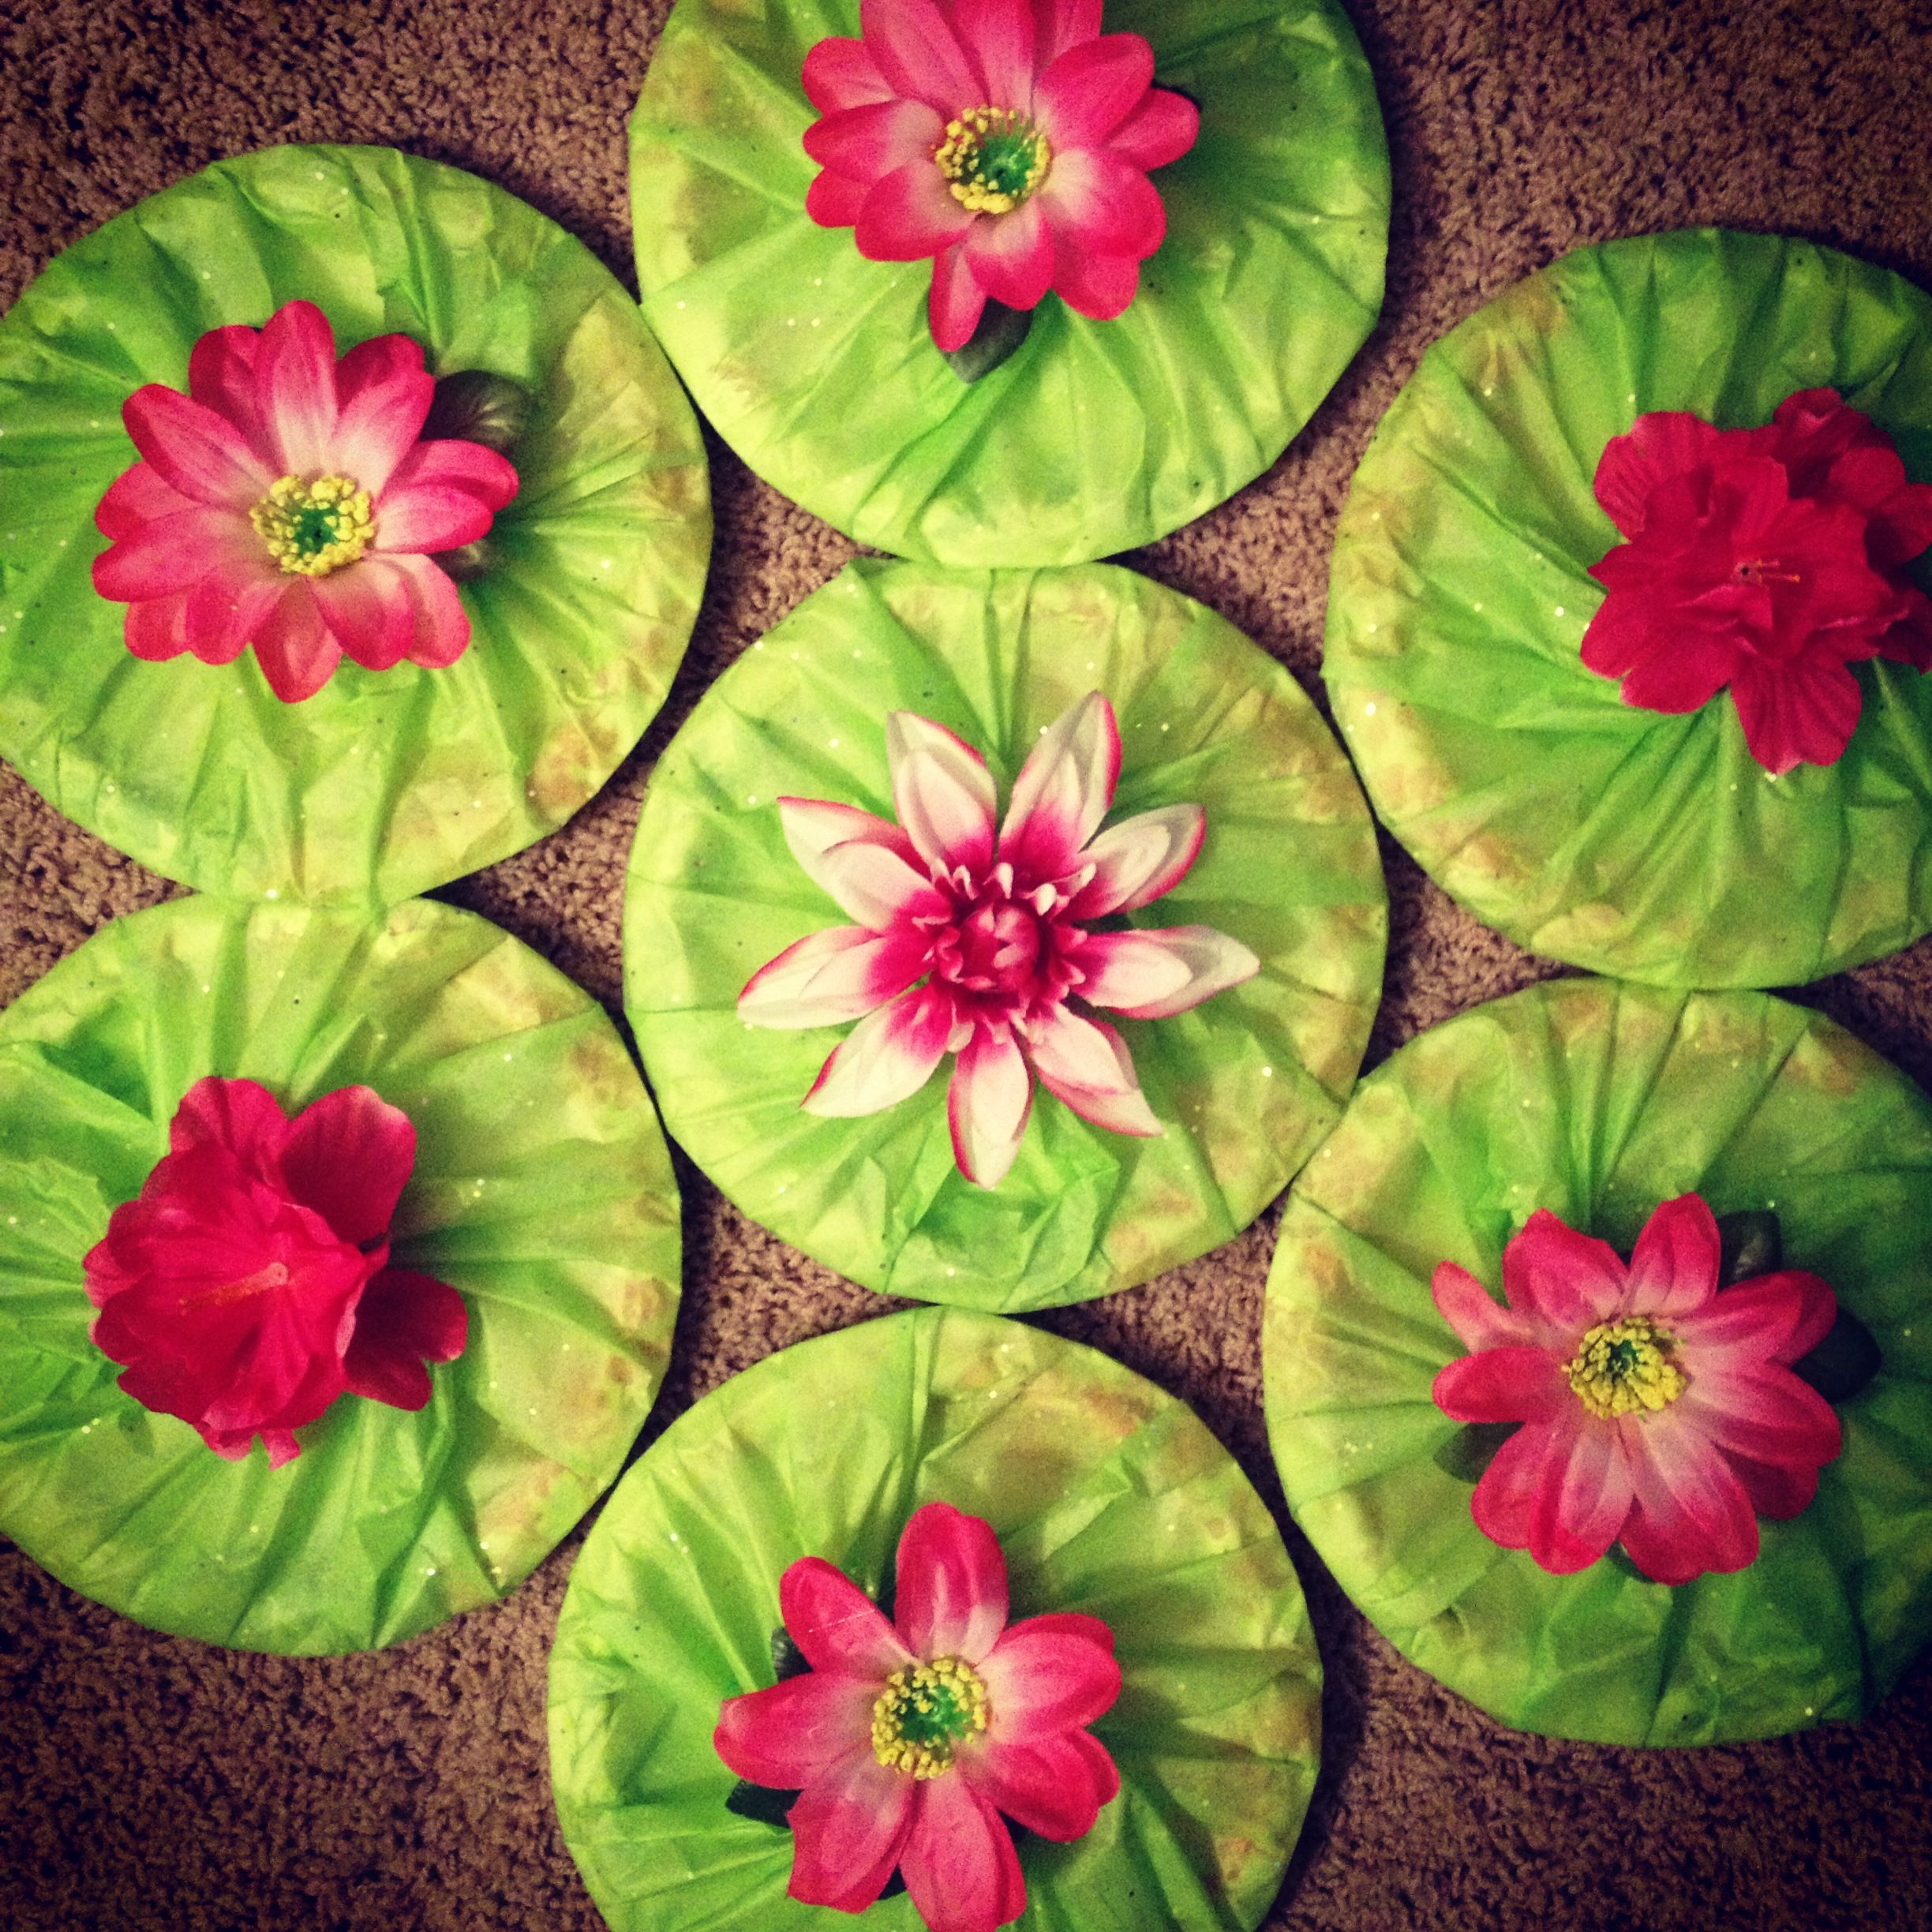 DIY lilypads for frog princess party! $1 sparkle tissue paper $1 flowers $1 paper plates & DIY lilypads for frog princess party! $1 sparkle tissue paper $1 ...